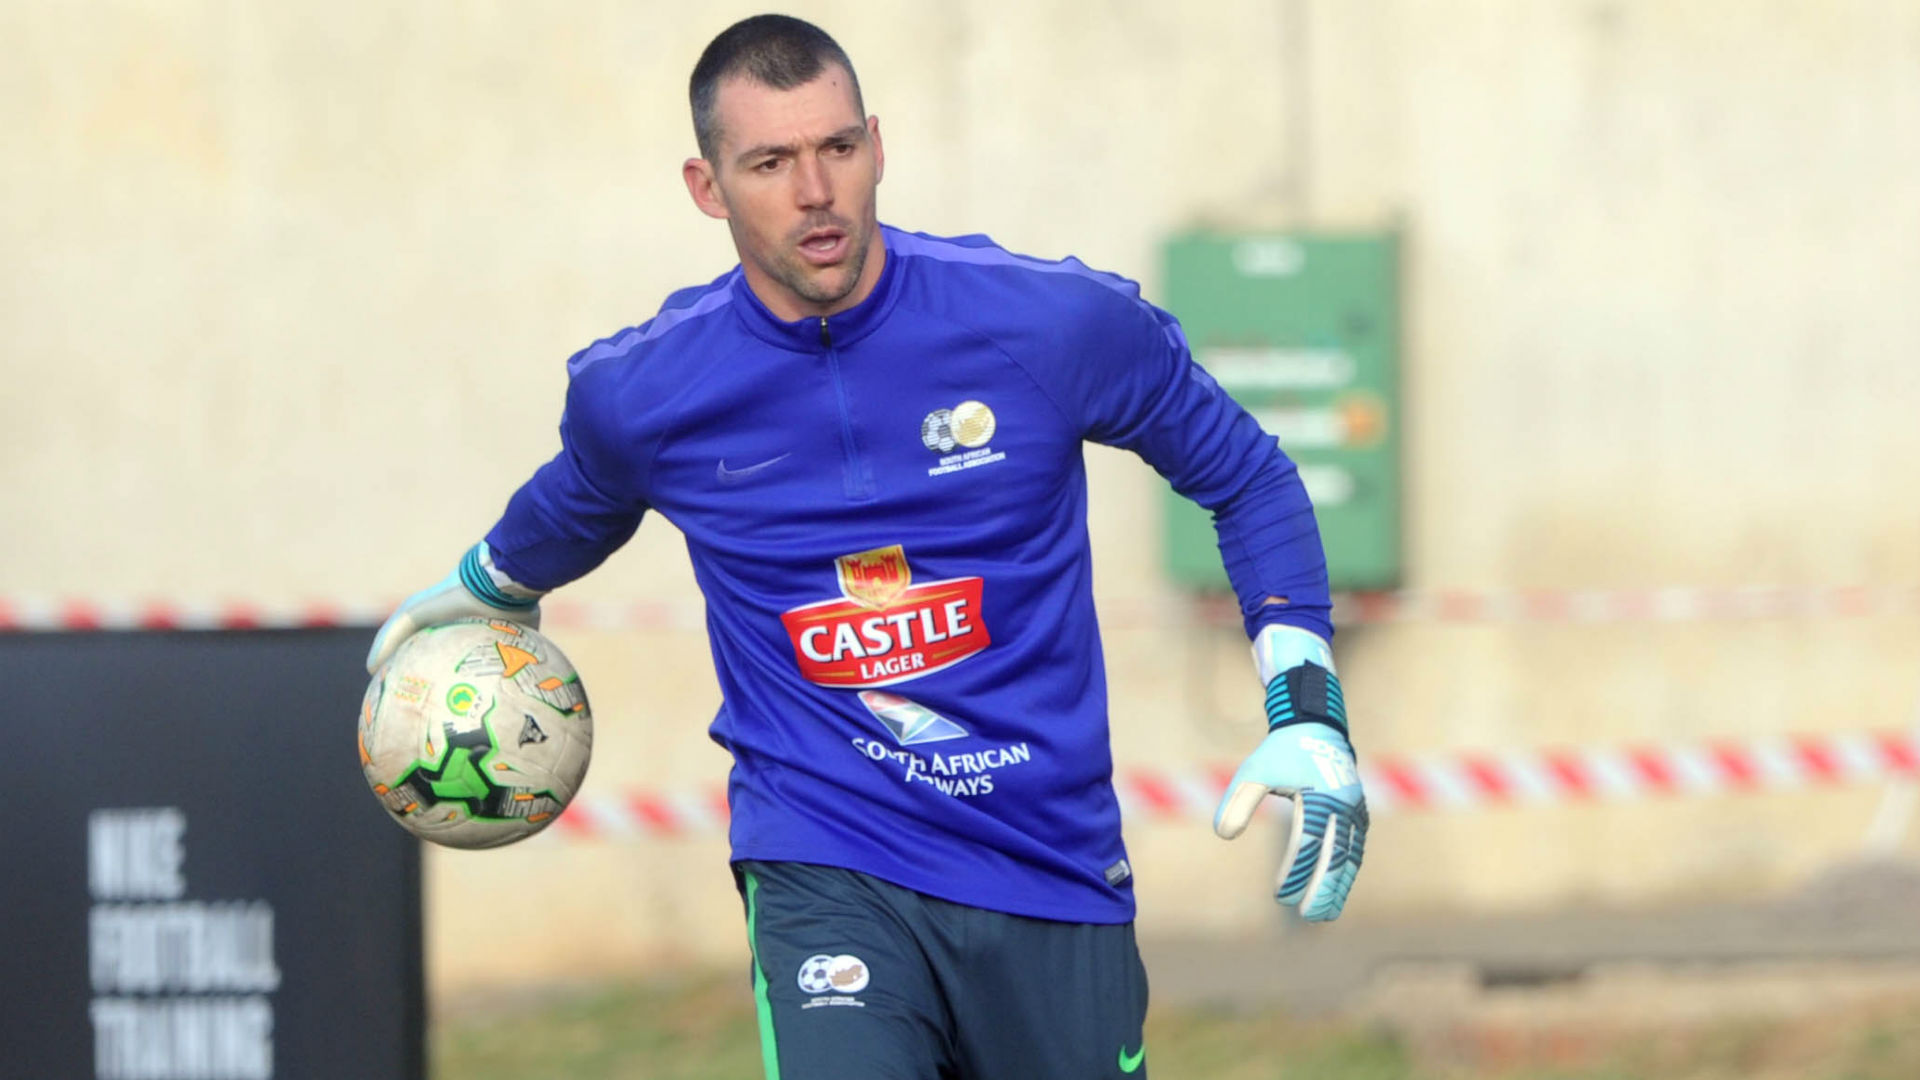 South Africa, Wayne Sandilands